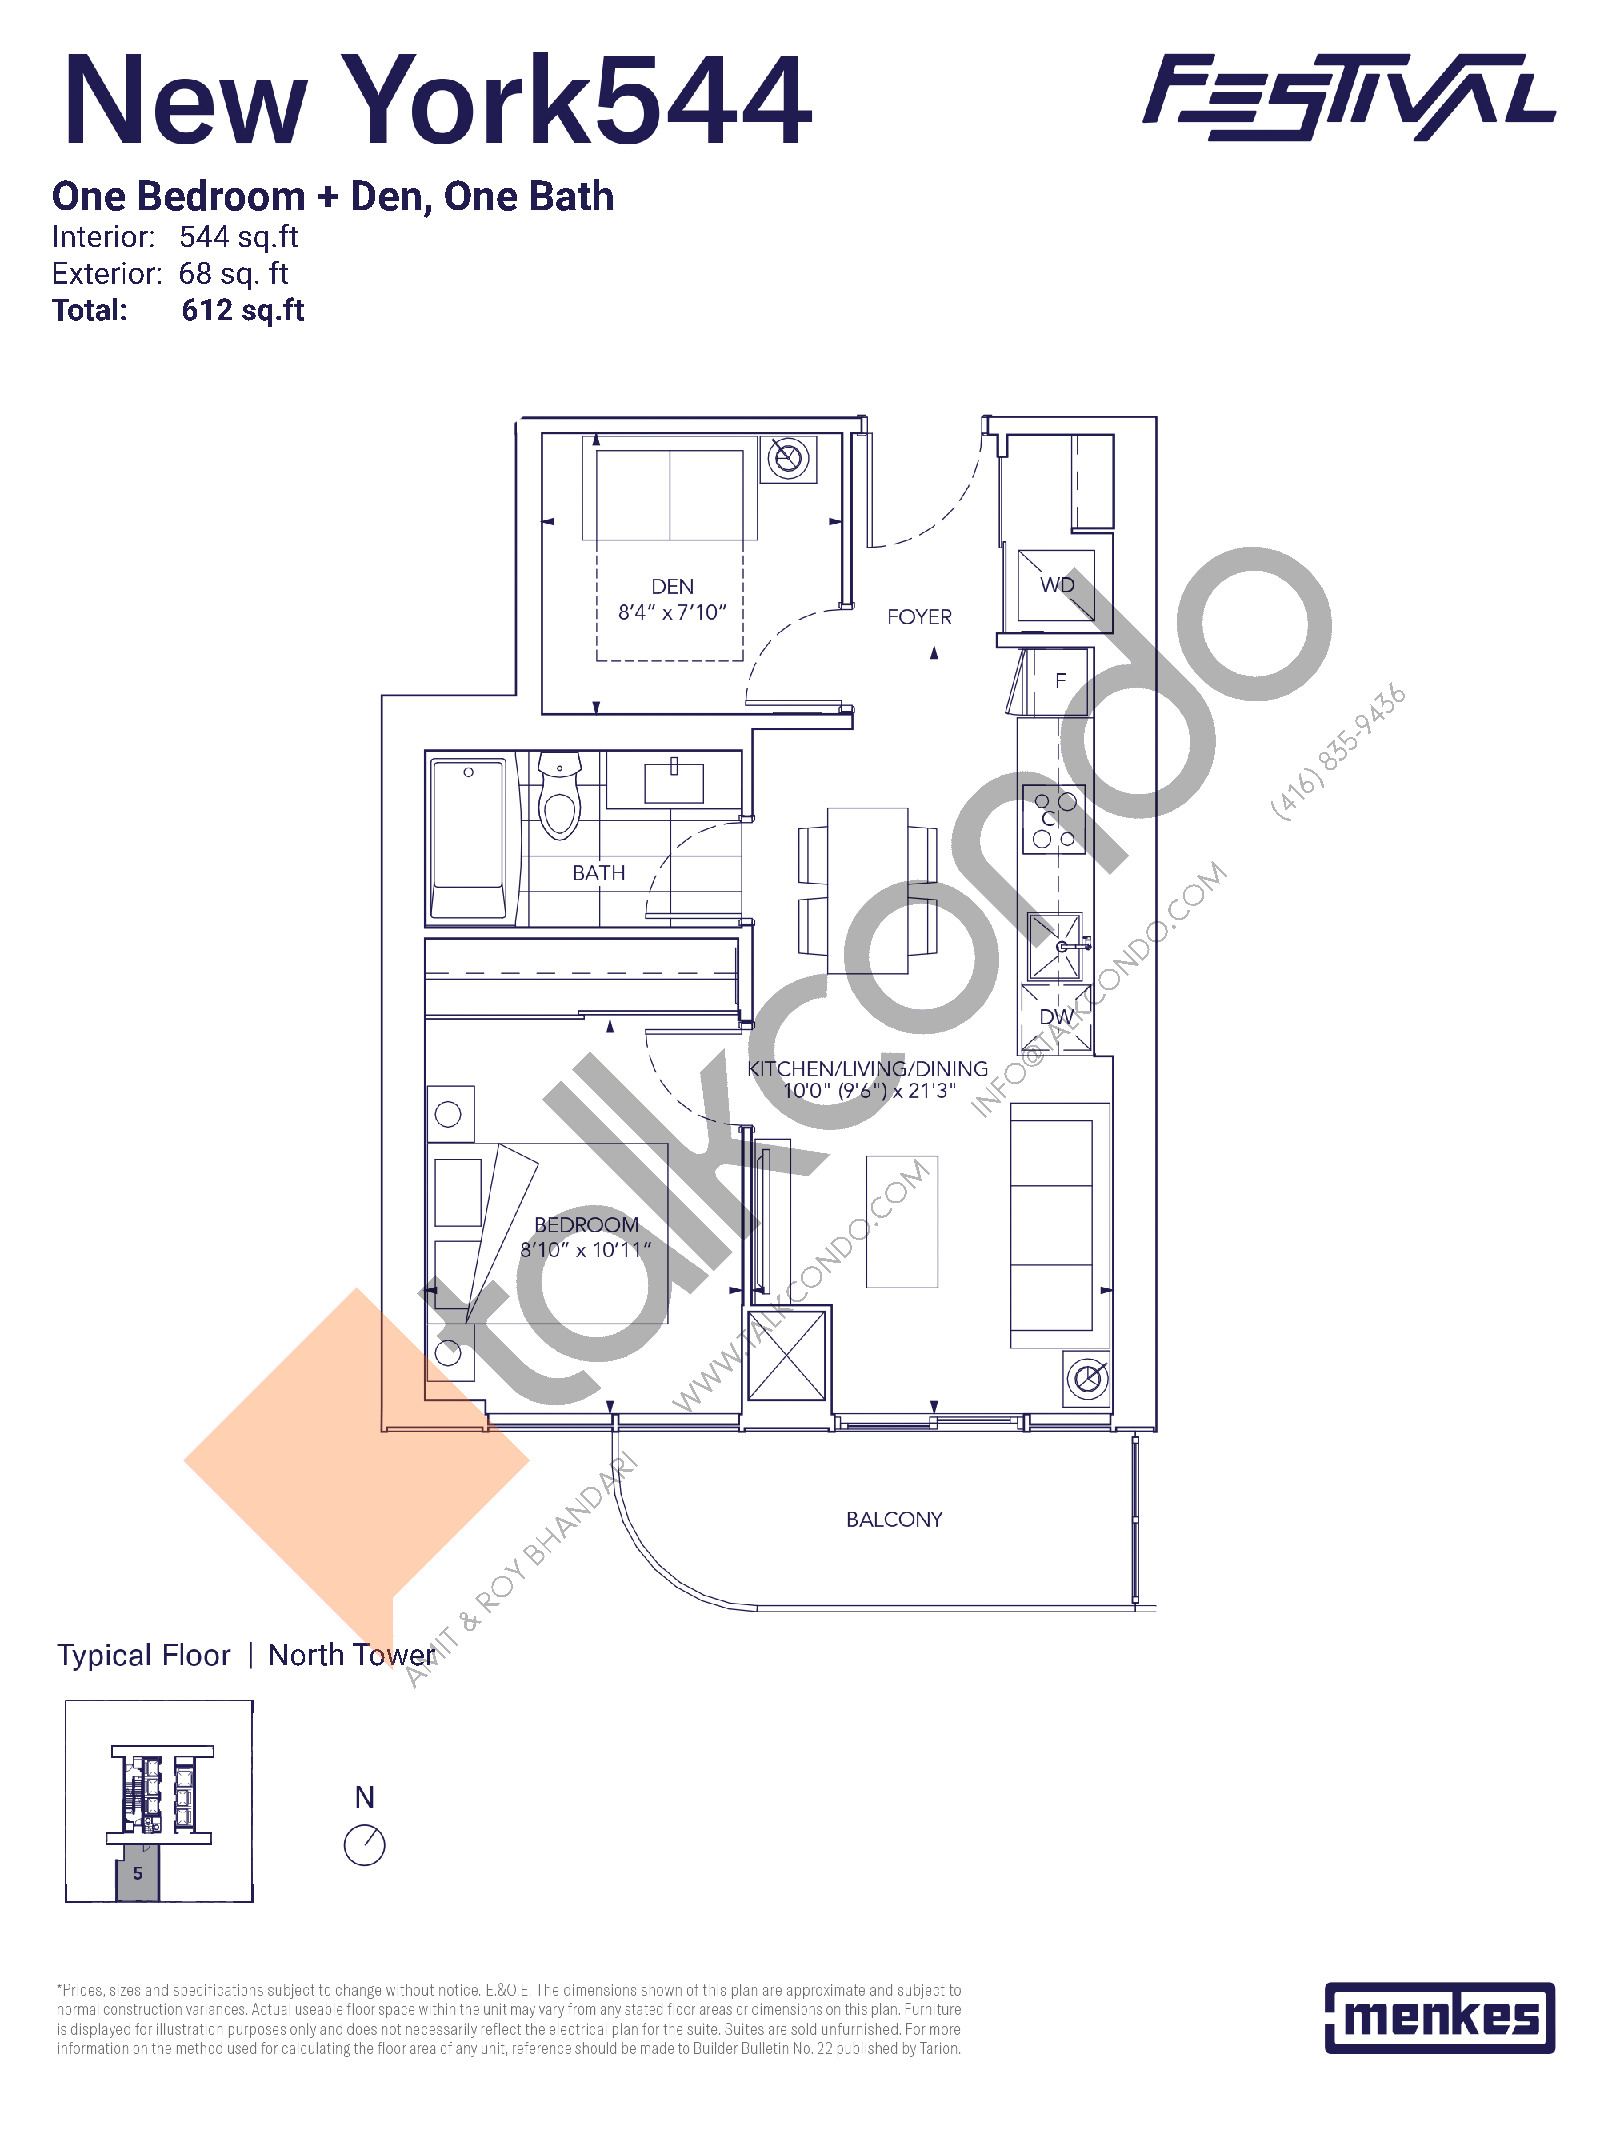 New York 544 Floor Plan at Festival Condos North Tower - 544 sq.ft